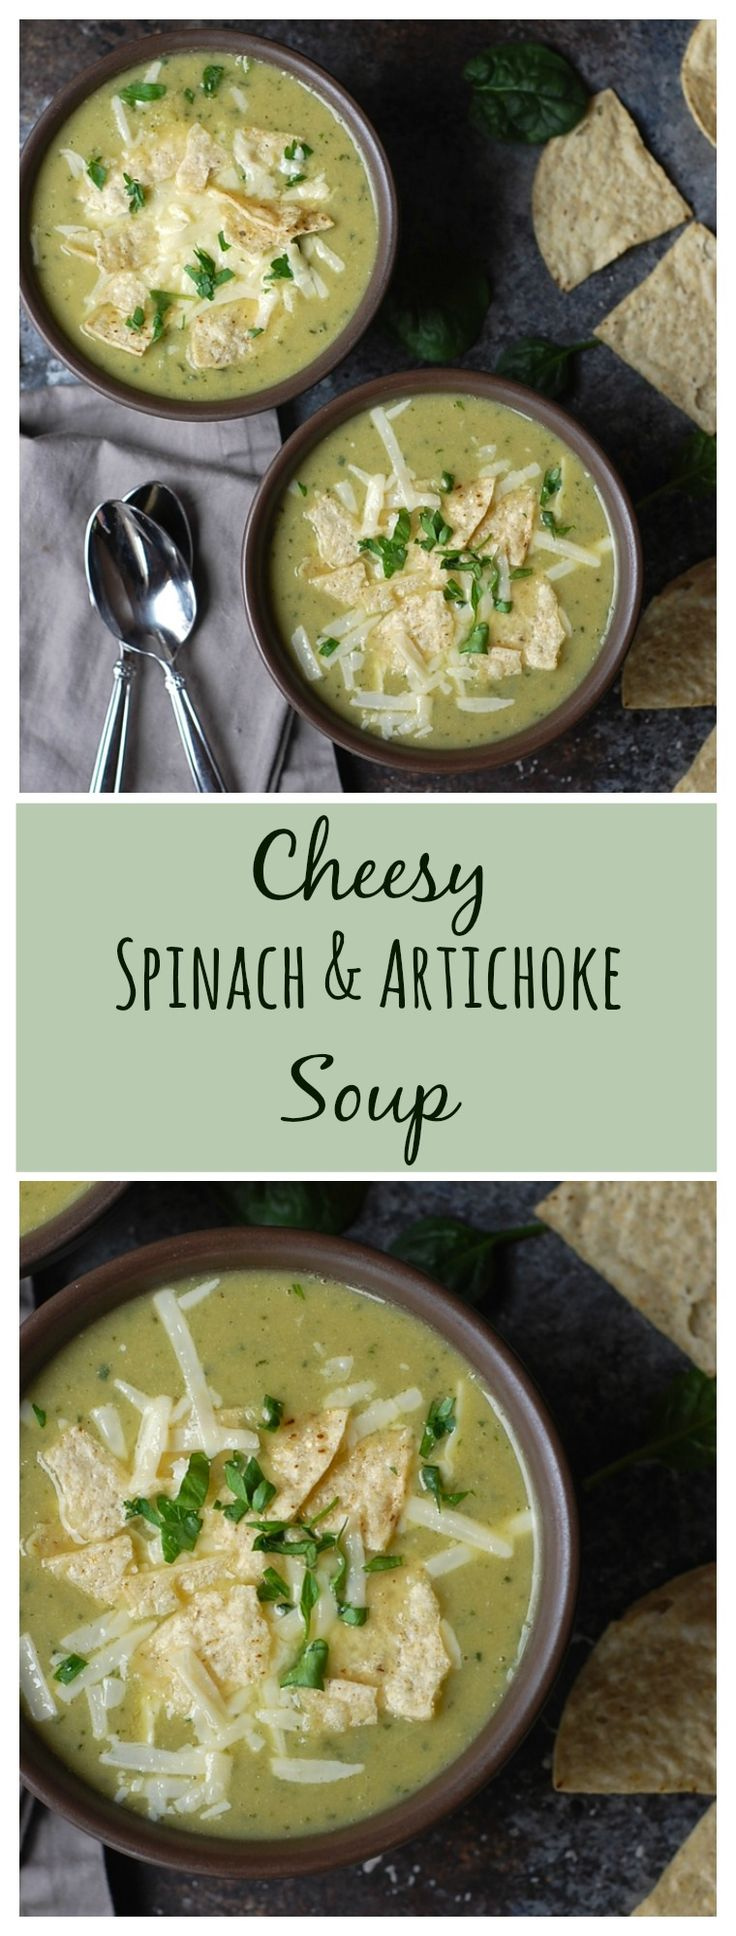 All the flavors of spinach and artichoke dip in soup form. Veganize by subbing vegan cheeses